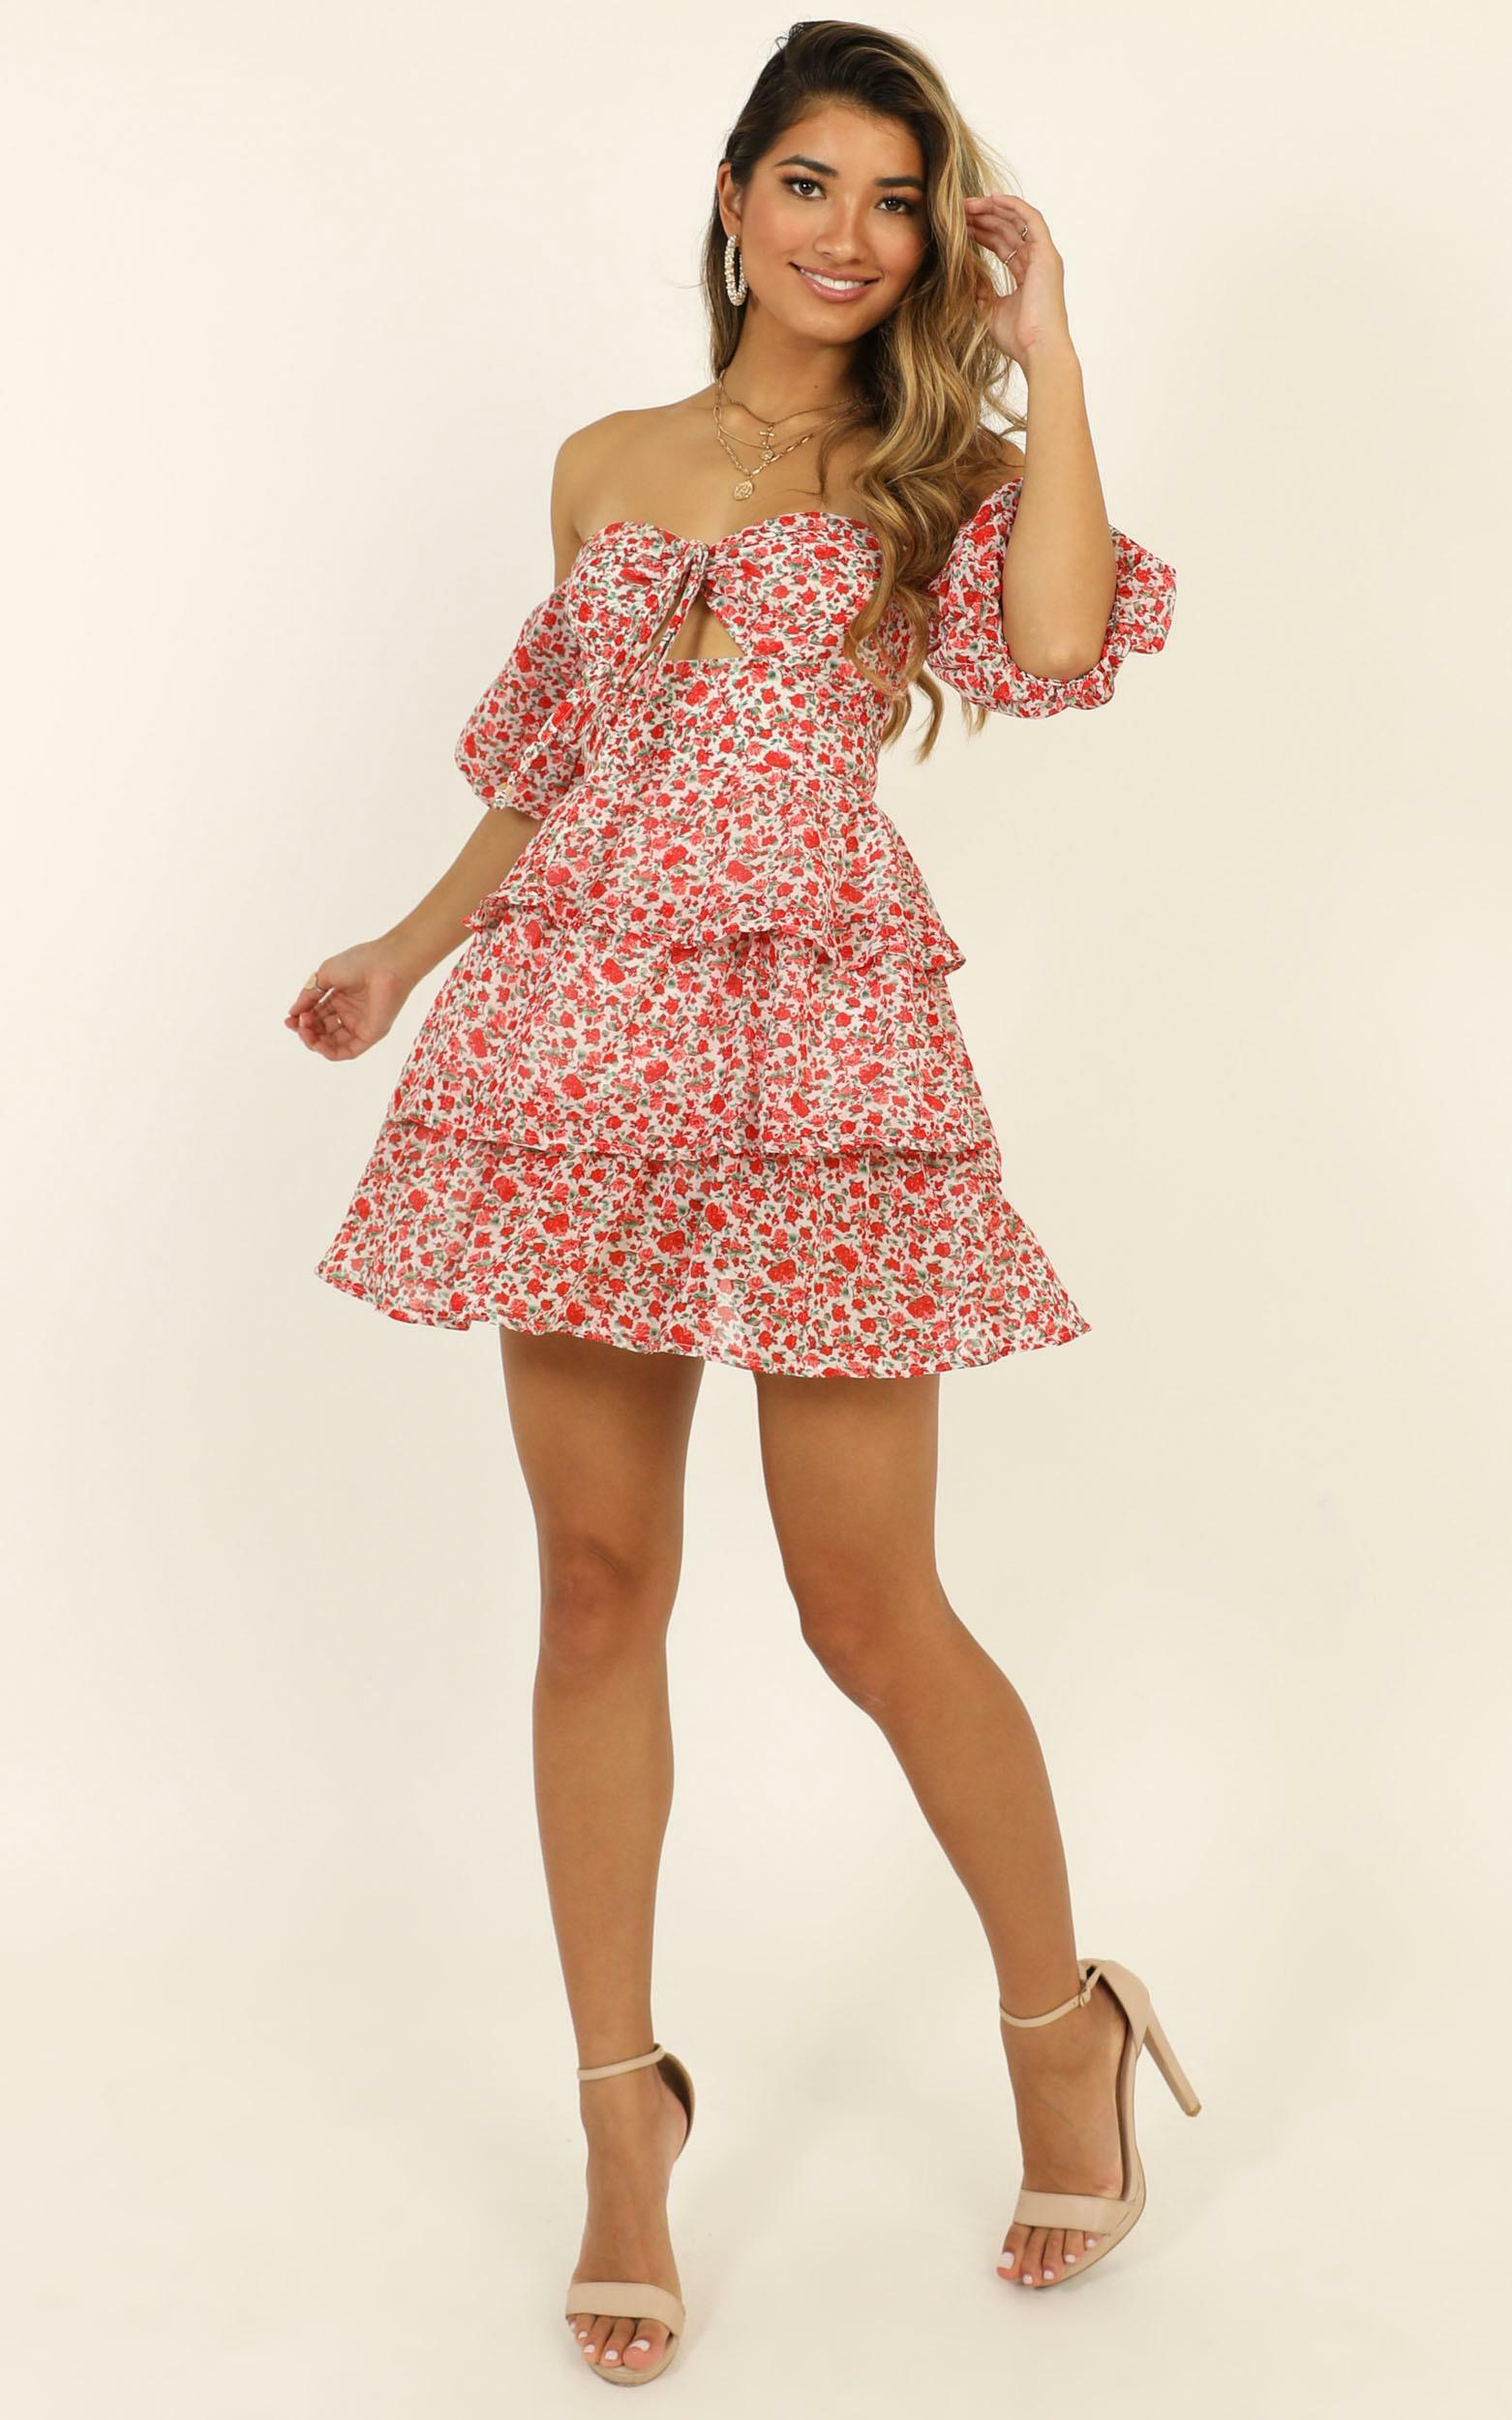 Call On Me Dress in red floral - 14 (XL), Red, hi-res image number null